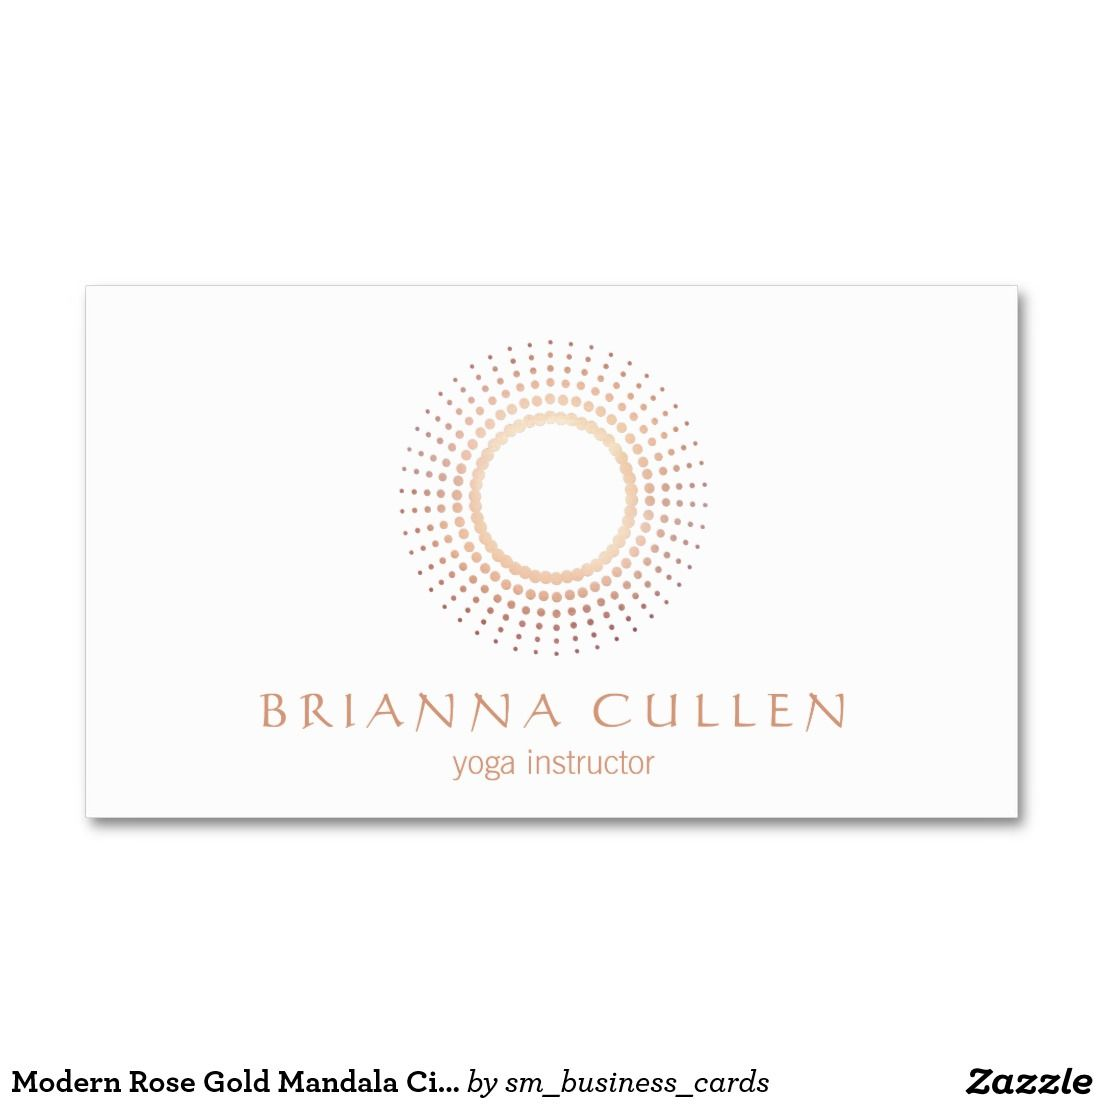 Modern Rose Gold Mandala Circle Logo White Business Card Great Design For Yoga And